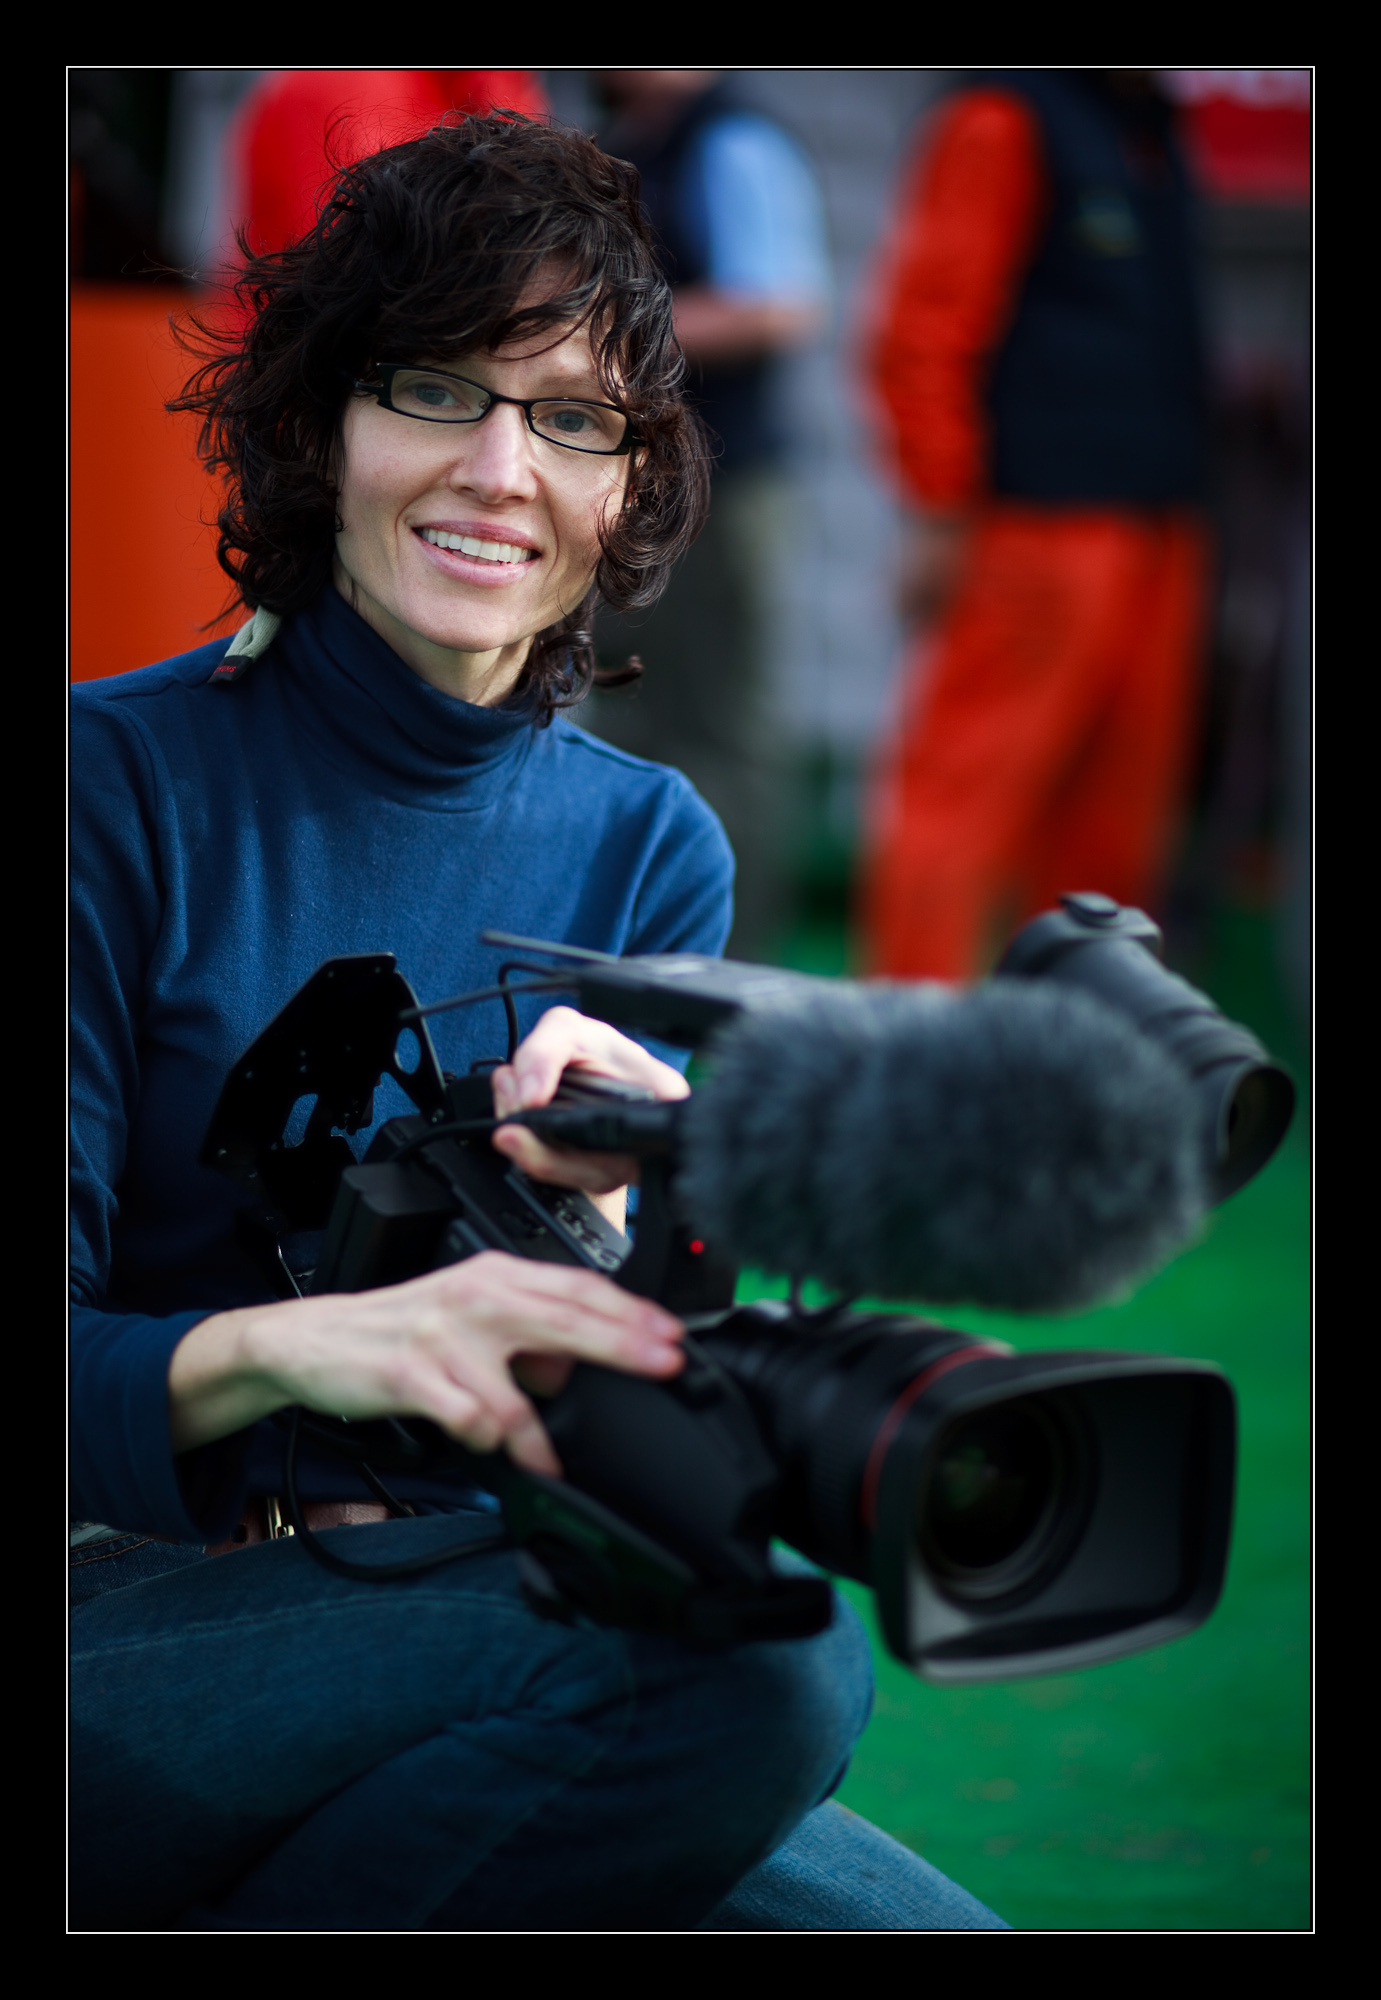 Dena Seidel, director of Rutgers Center for Digital Filmmaking